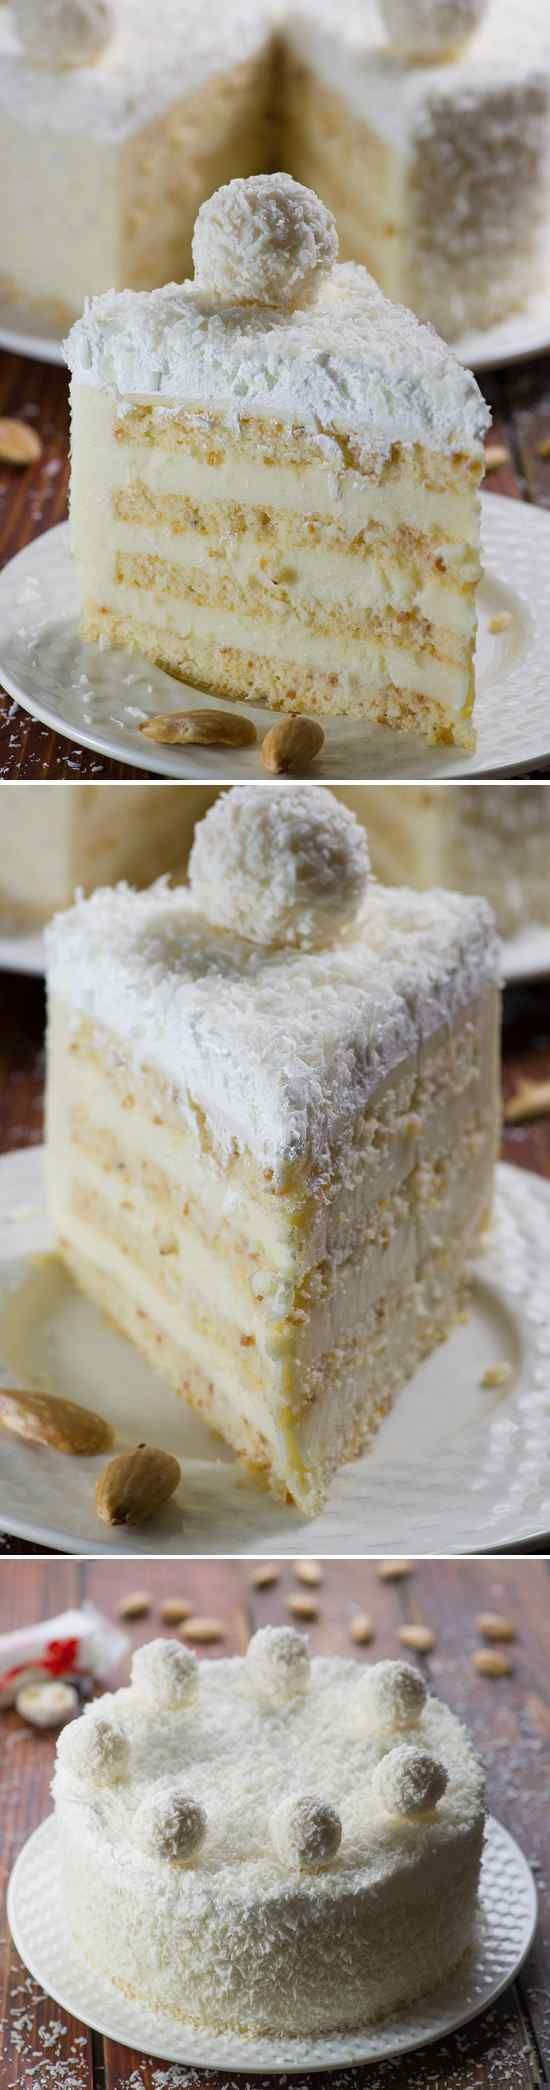 Almond coconut cake is delicious blend of almond, coconut, white chocolate and lemon flavors. It has almond sponge, white chocolate- …